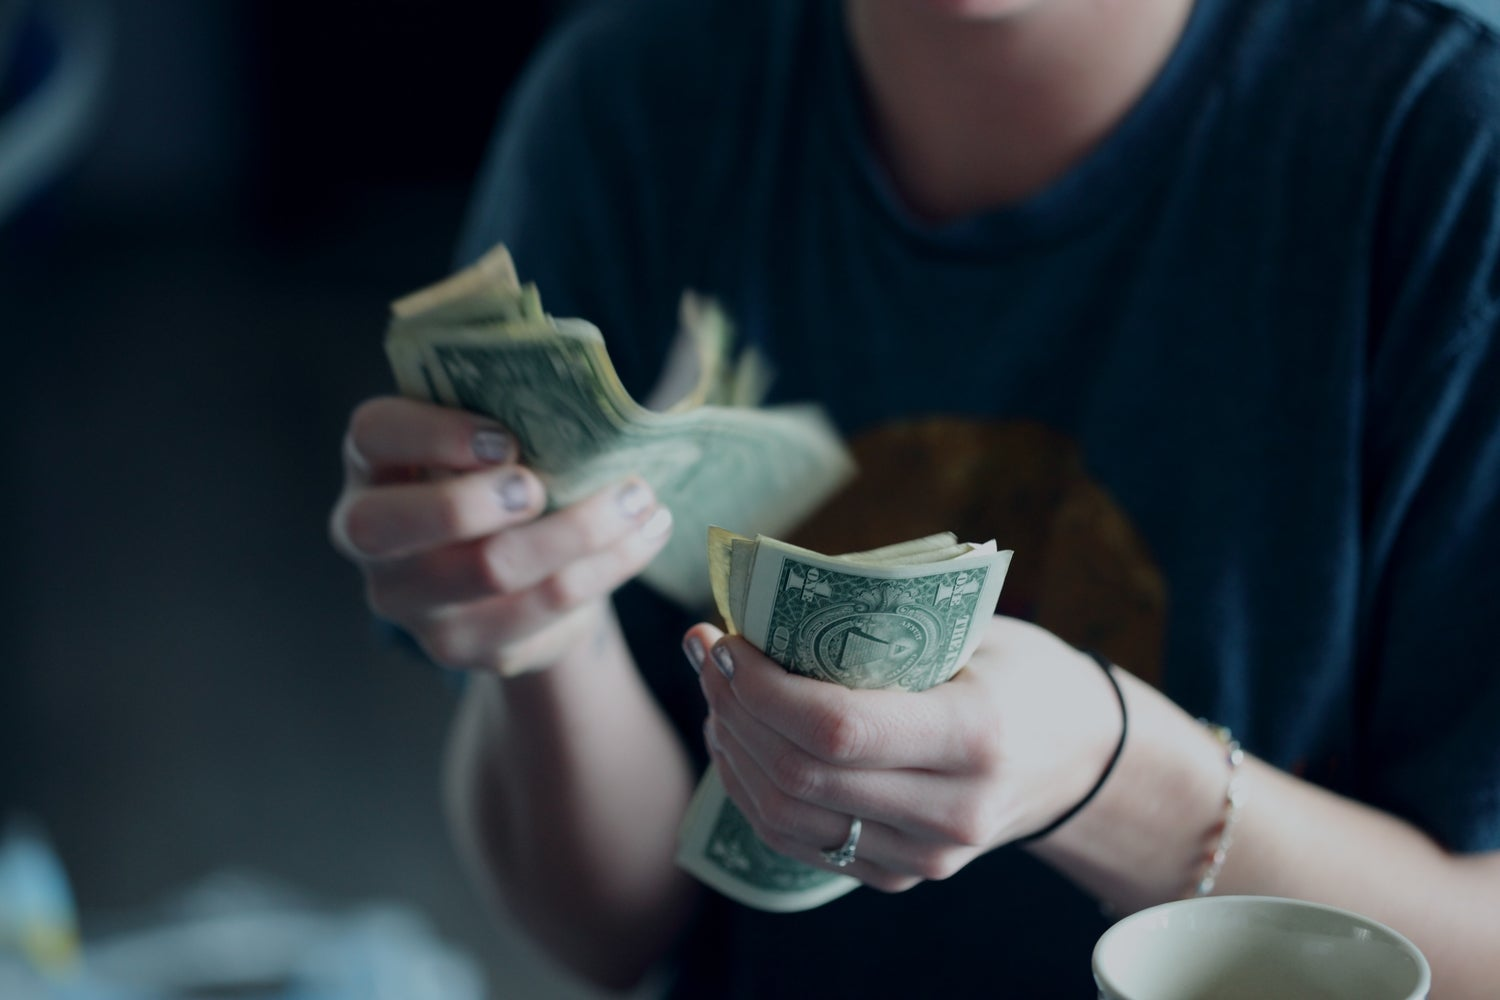 a person counting money in $1 U.S. bills